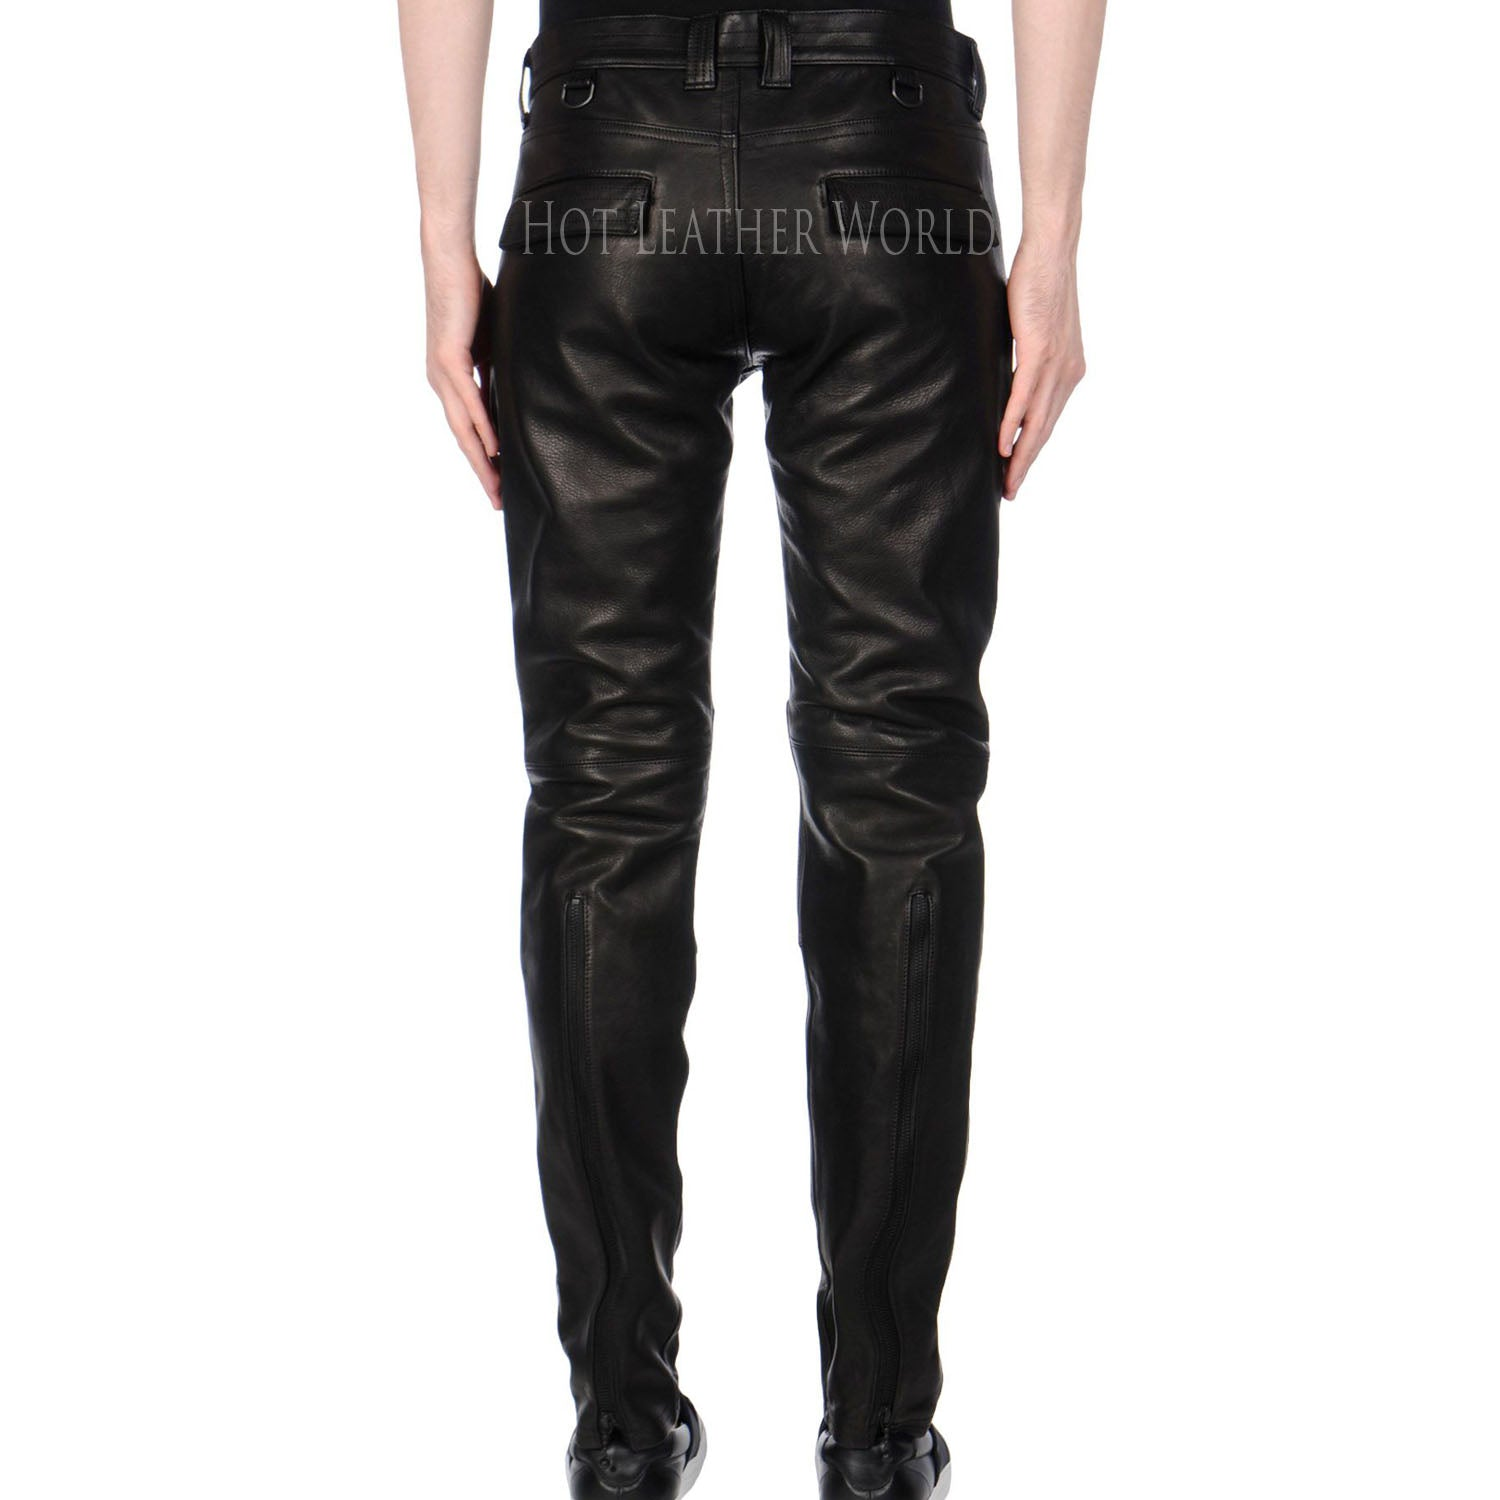 Lamb Skin Leather Pants -  HOTLEATHERWORLD